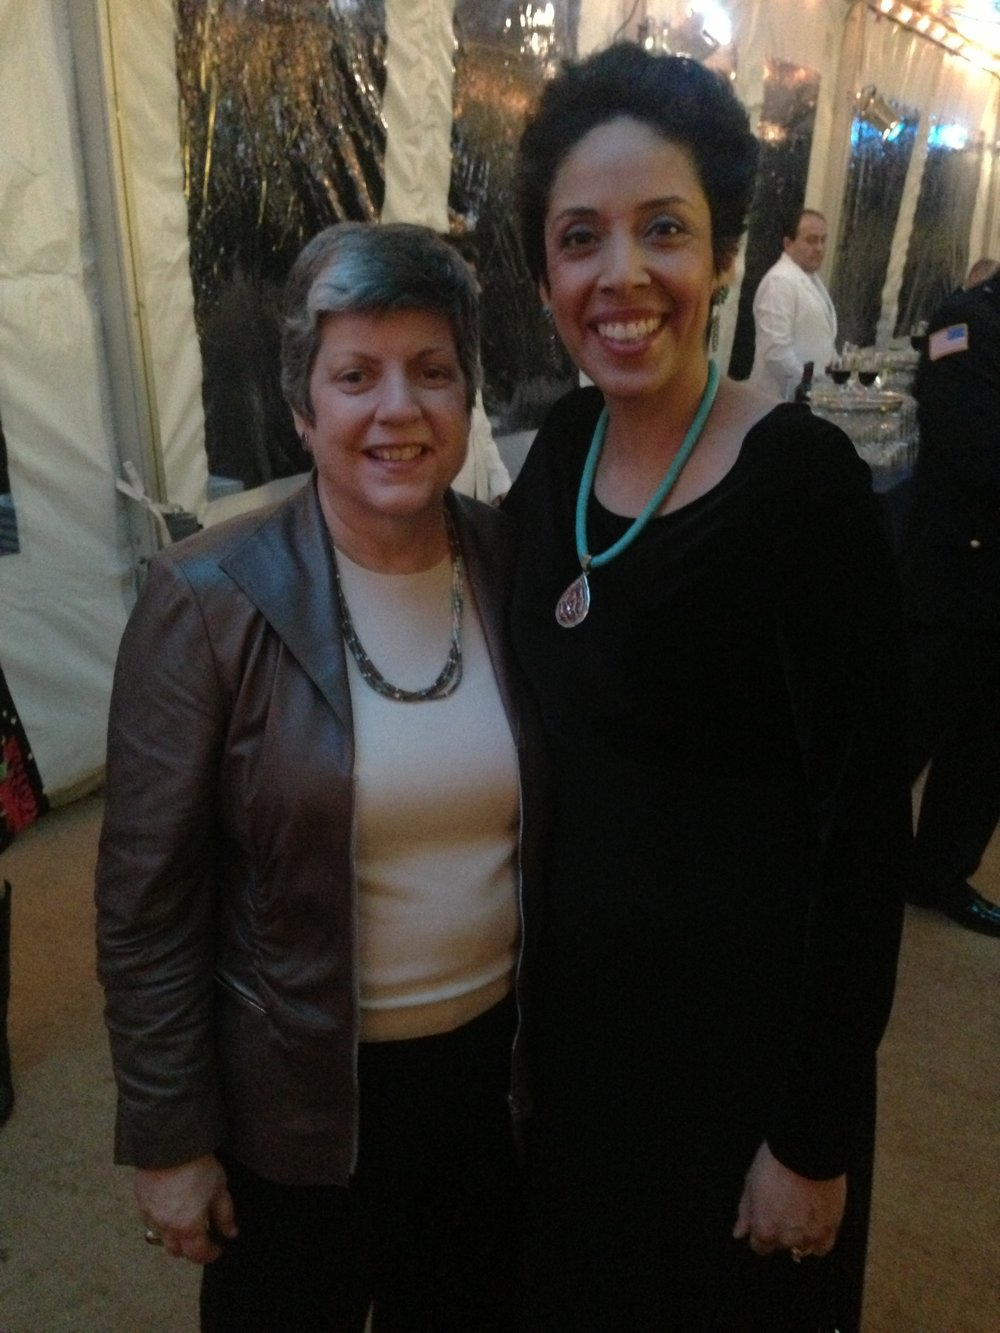 Former Governor of Arizona Janet Napolitano with Anna Maria Chávez